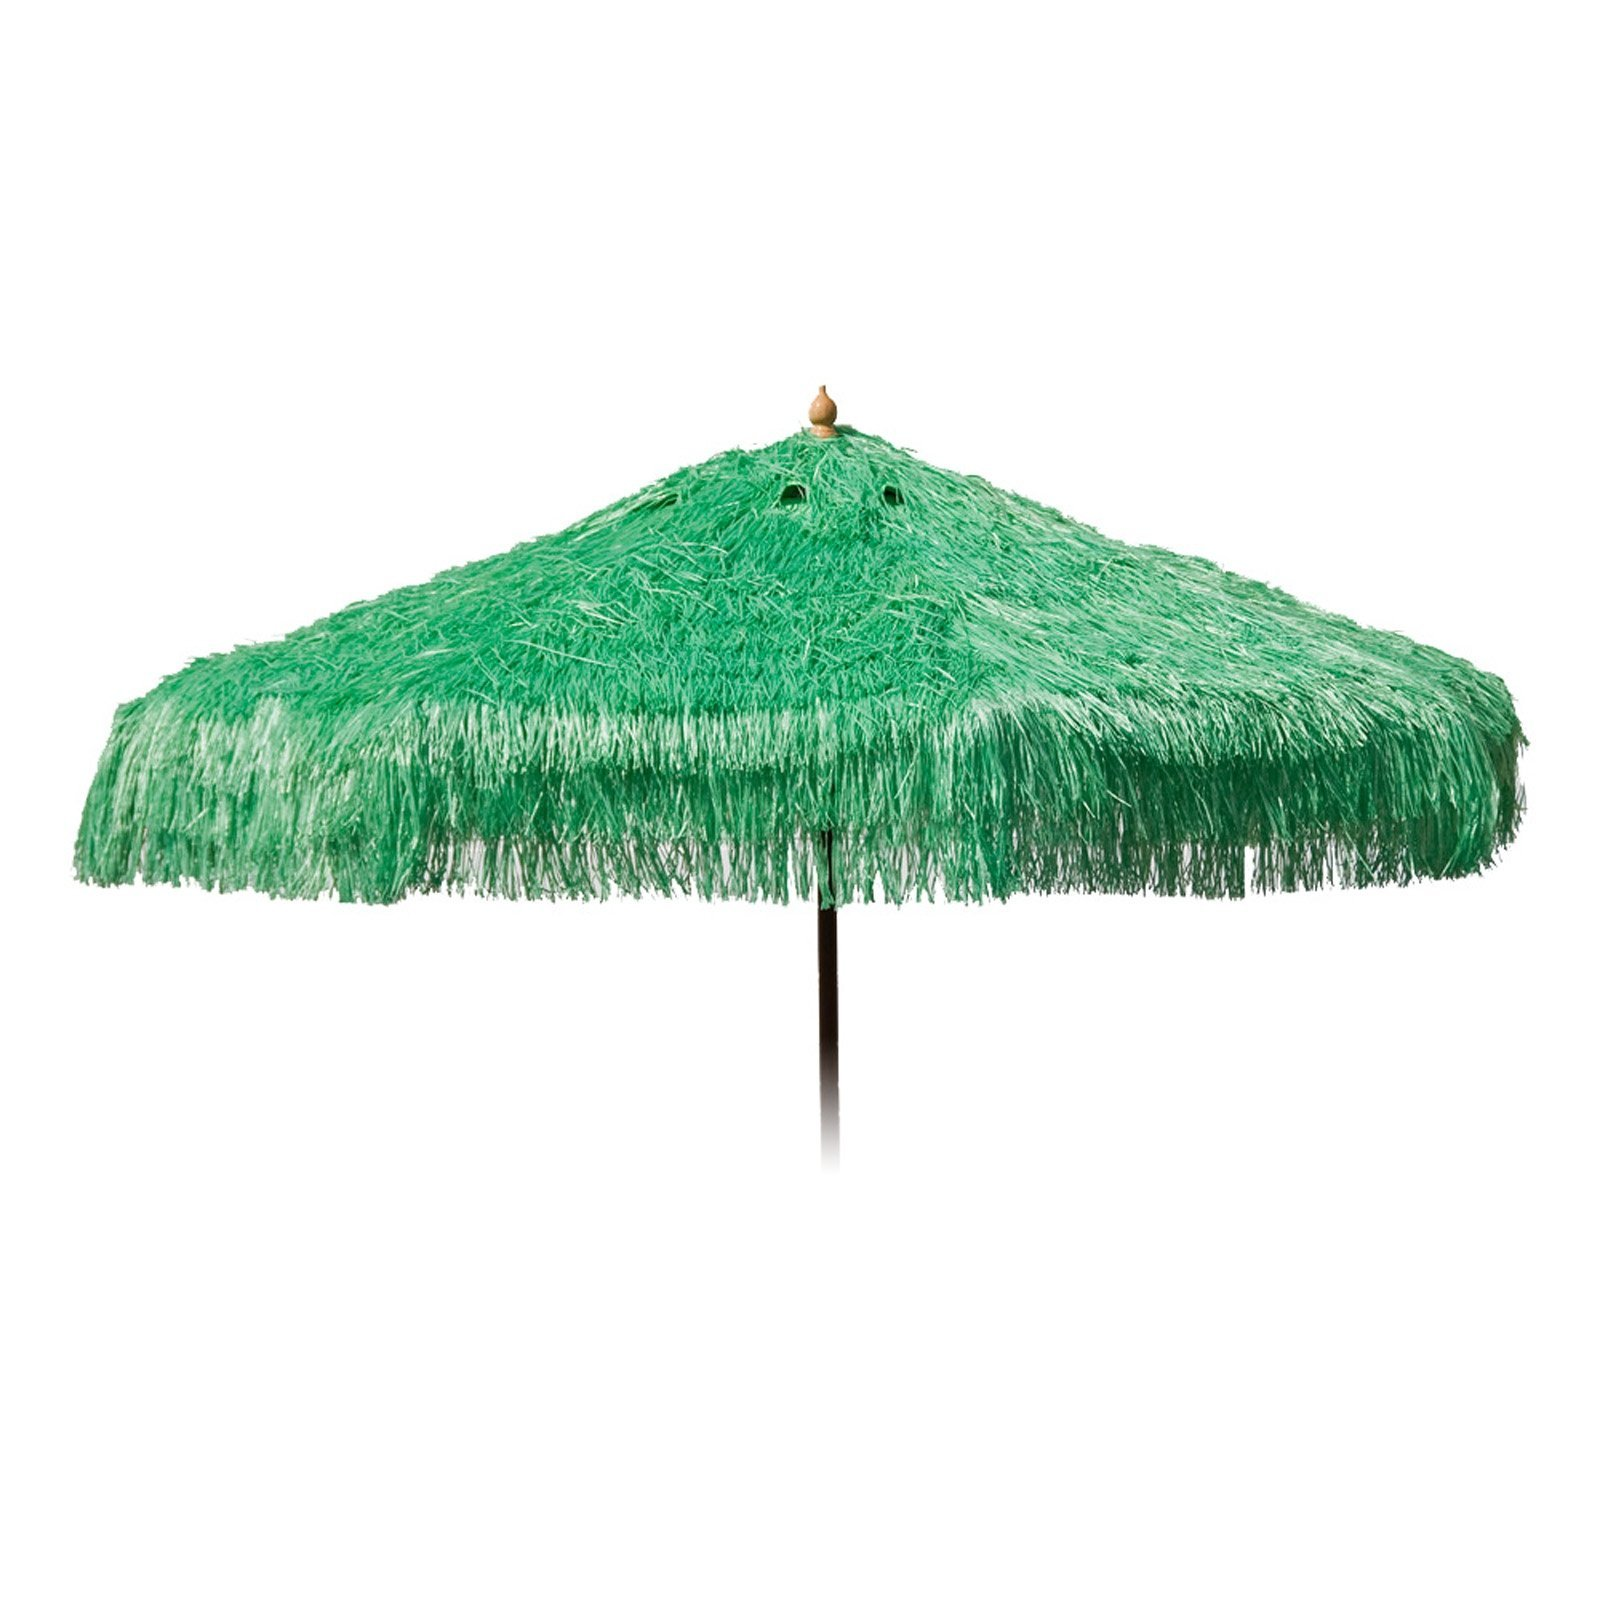 9ft Palapa Tiki Party Umbrella Home Patio Sun Canopy Lime Green Patio Pole